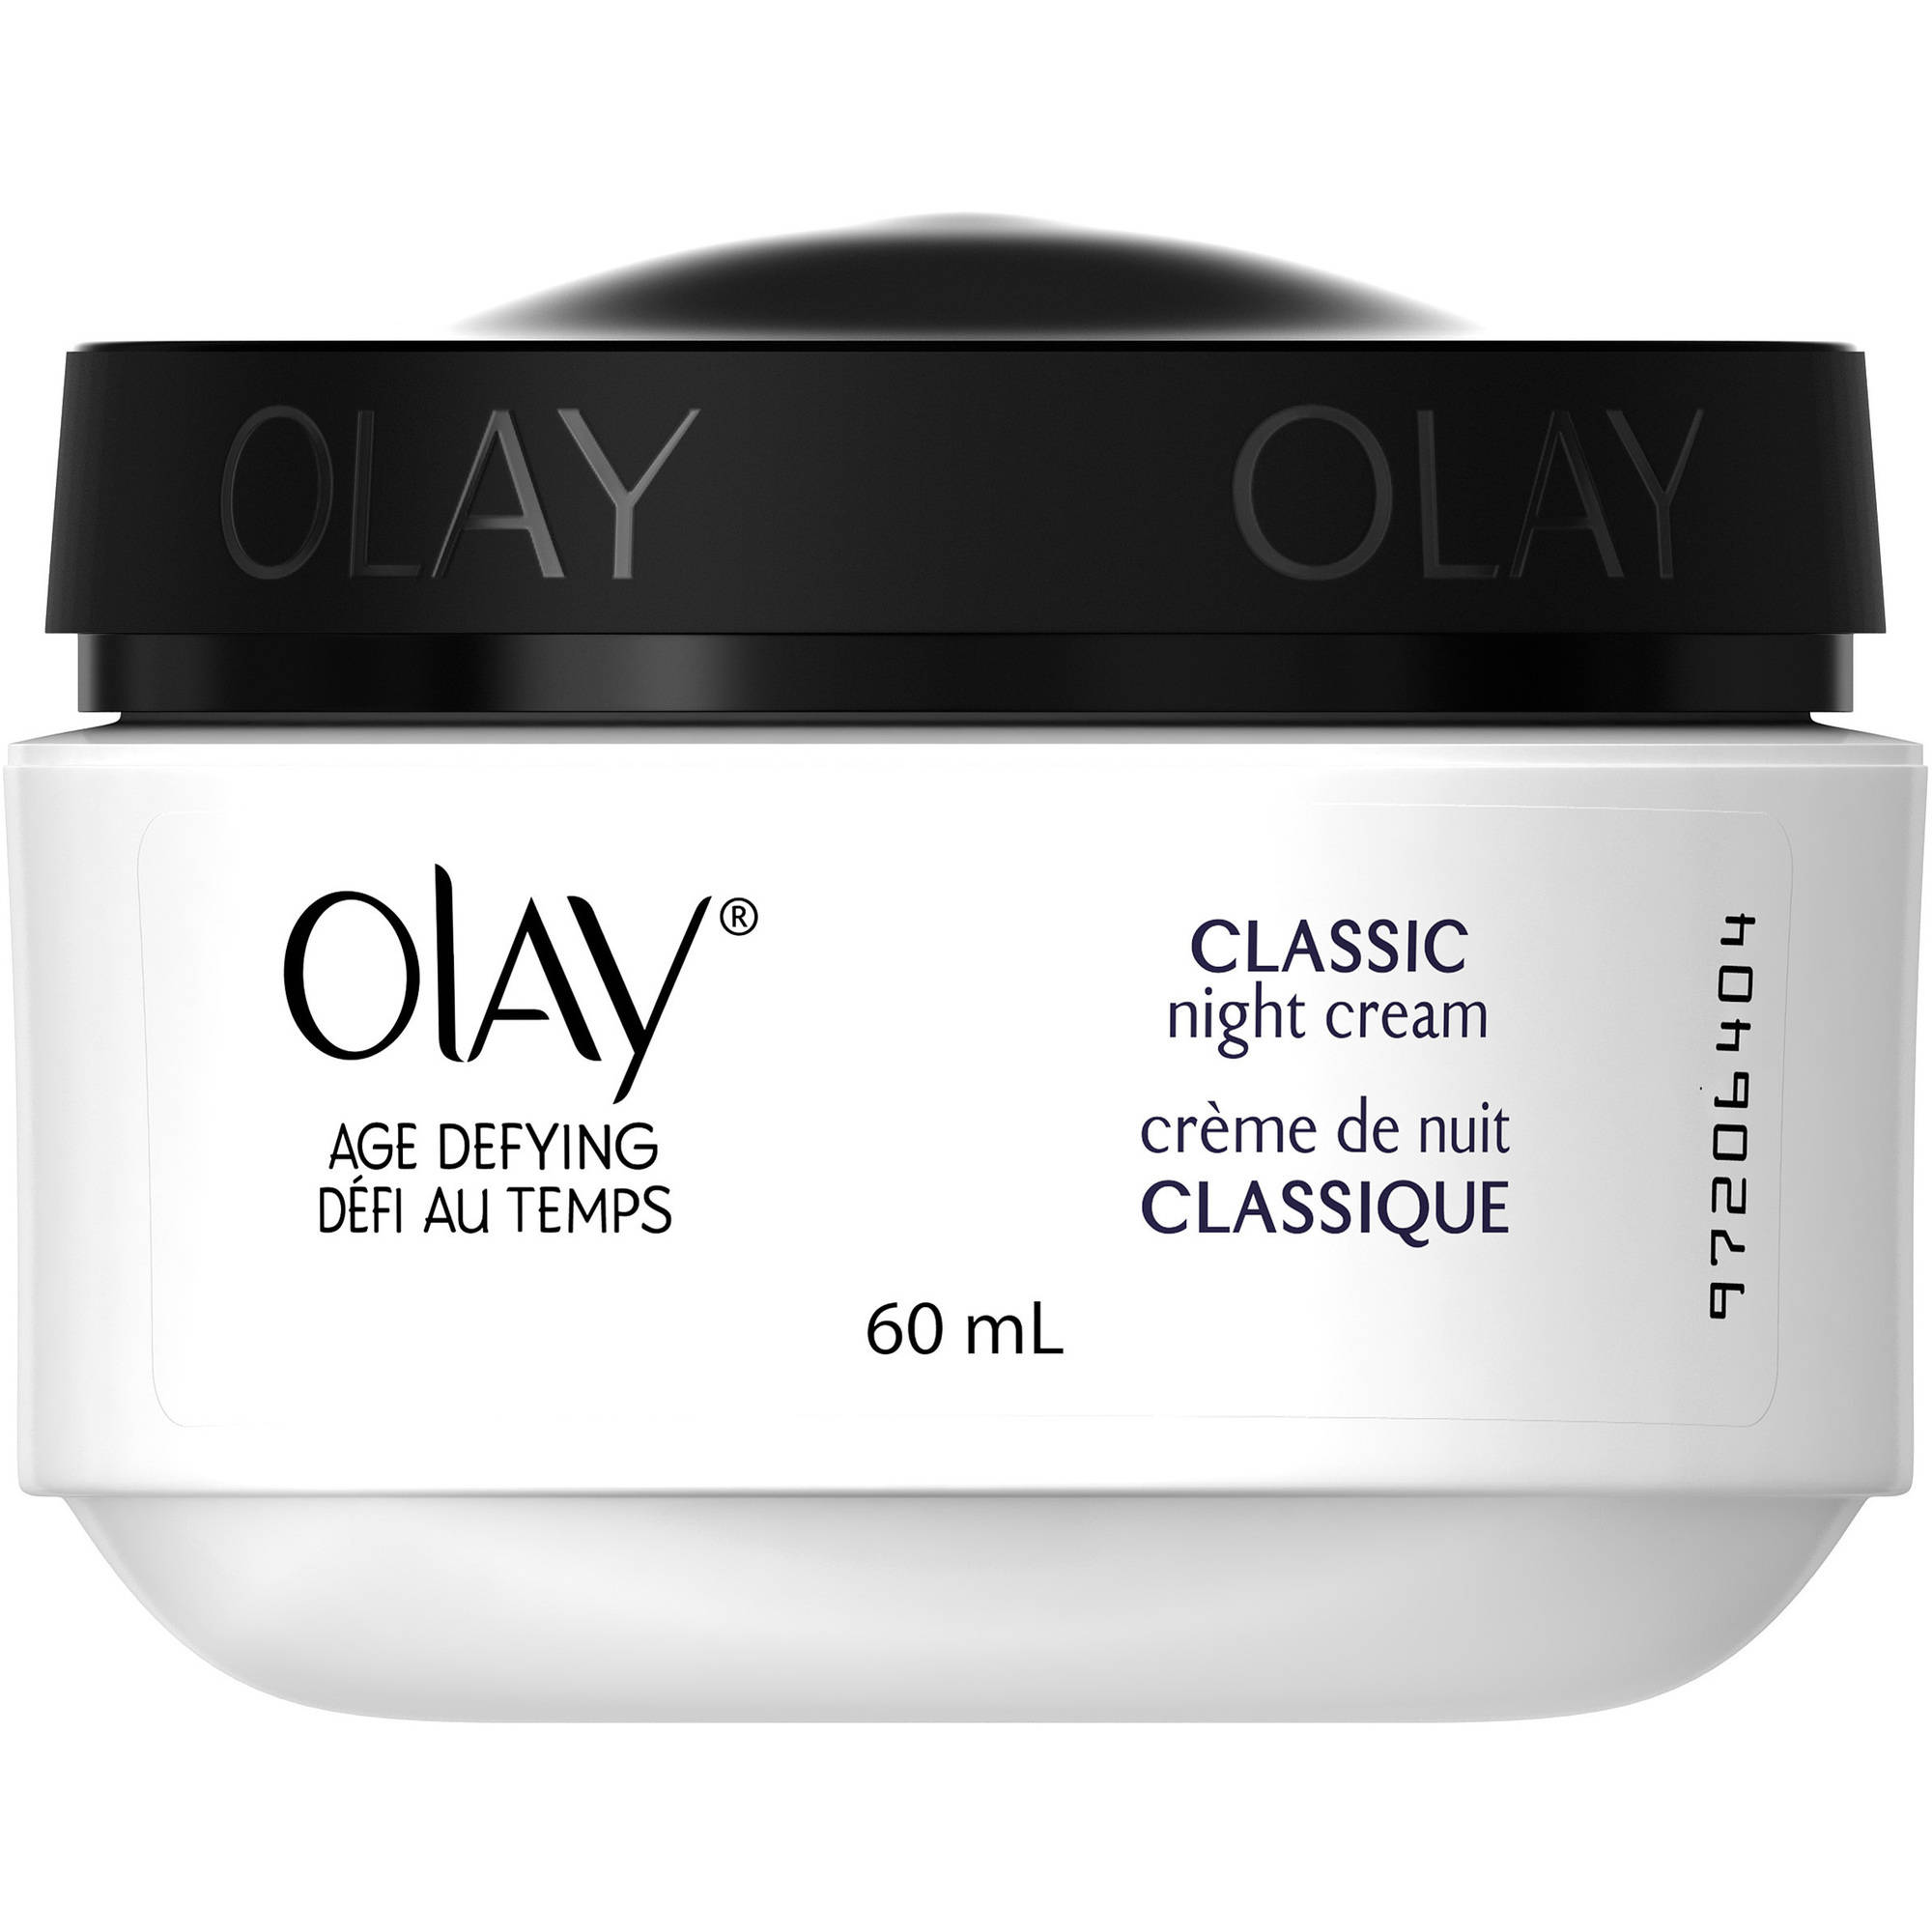 Olay Age Defying Classic Night Facial Cream, 2 oz